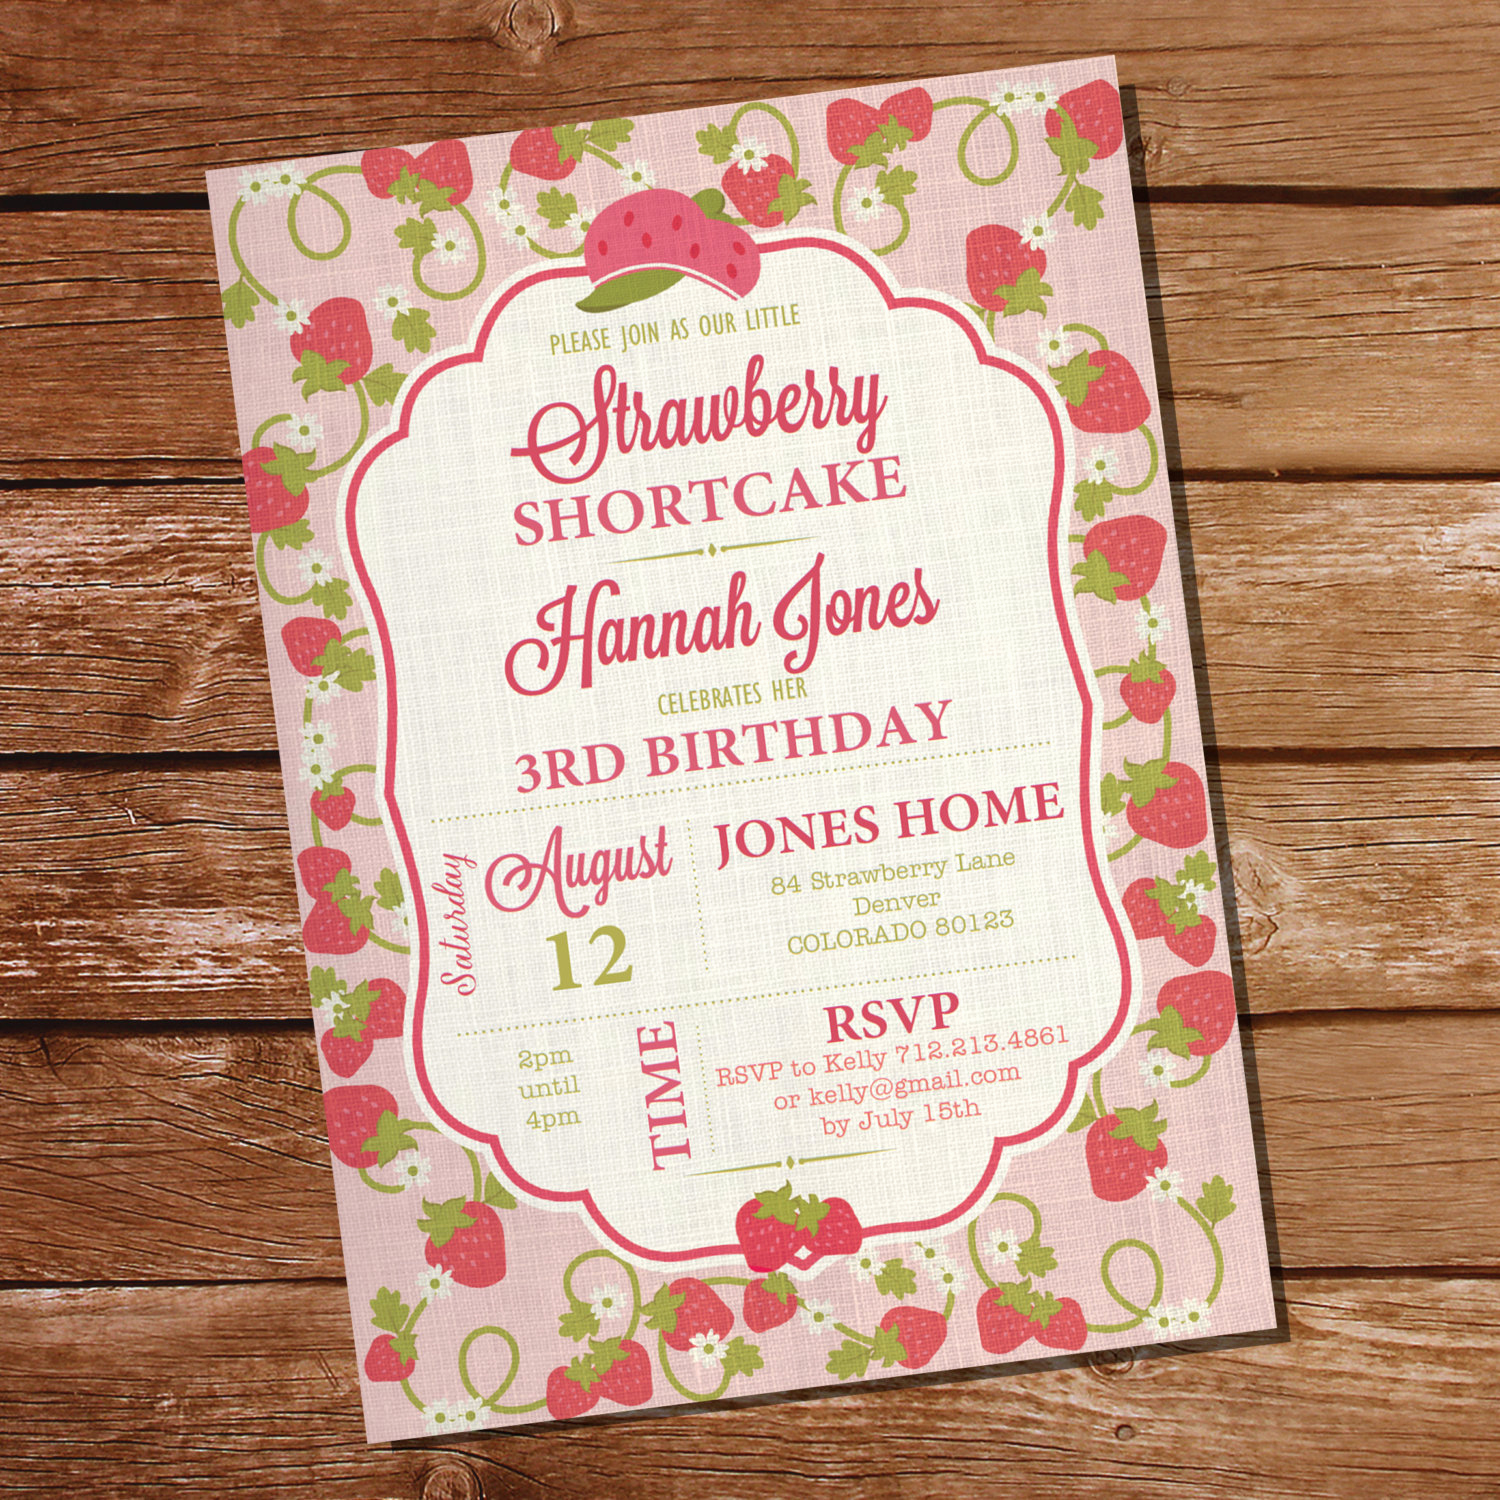 Strawberry Shortcake Invitation Templates Unique Strawberry Shortcake Party Invitation for A Girl Instant